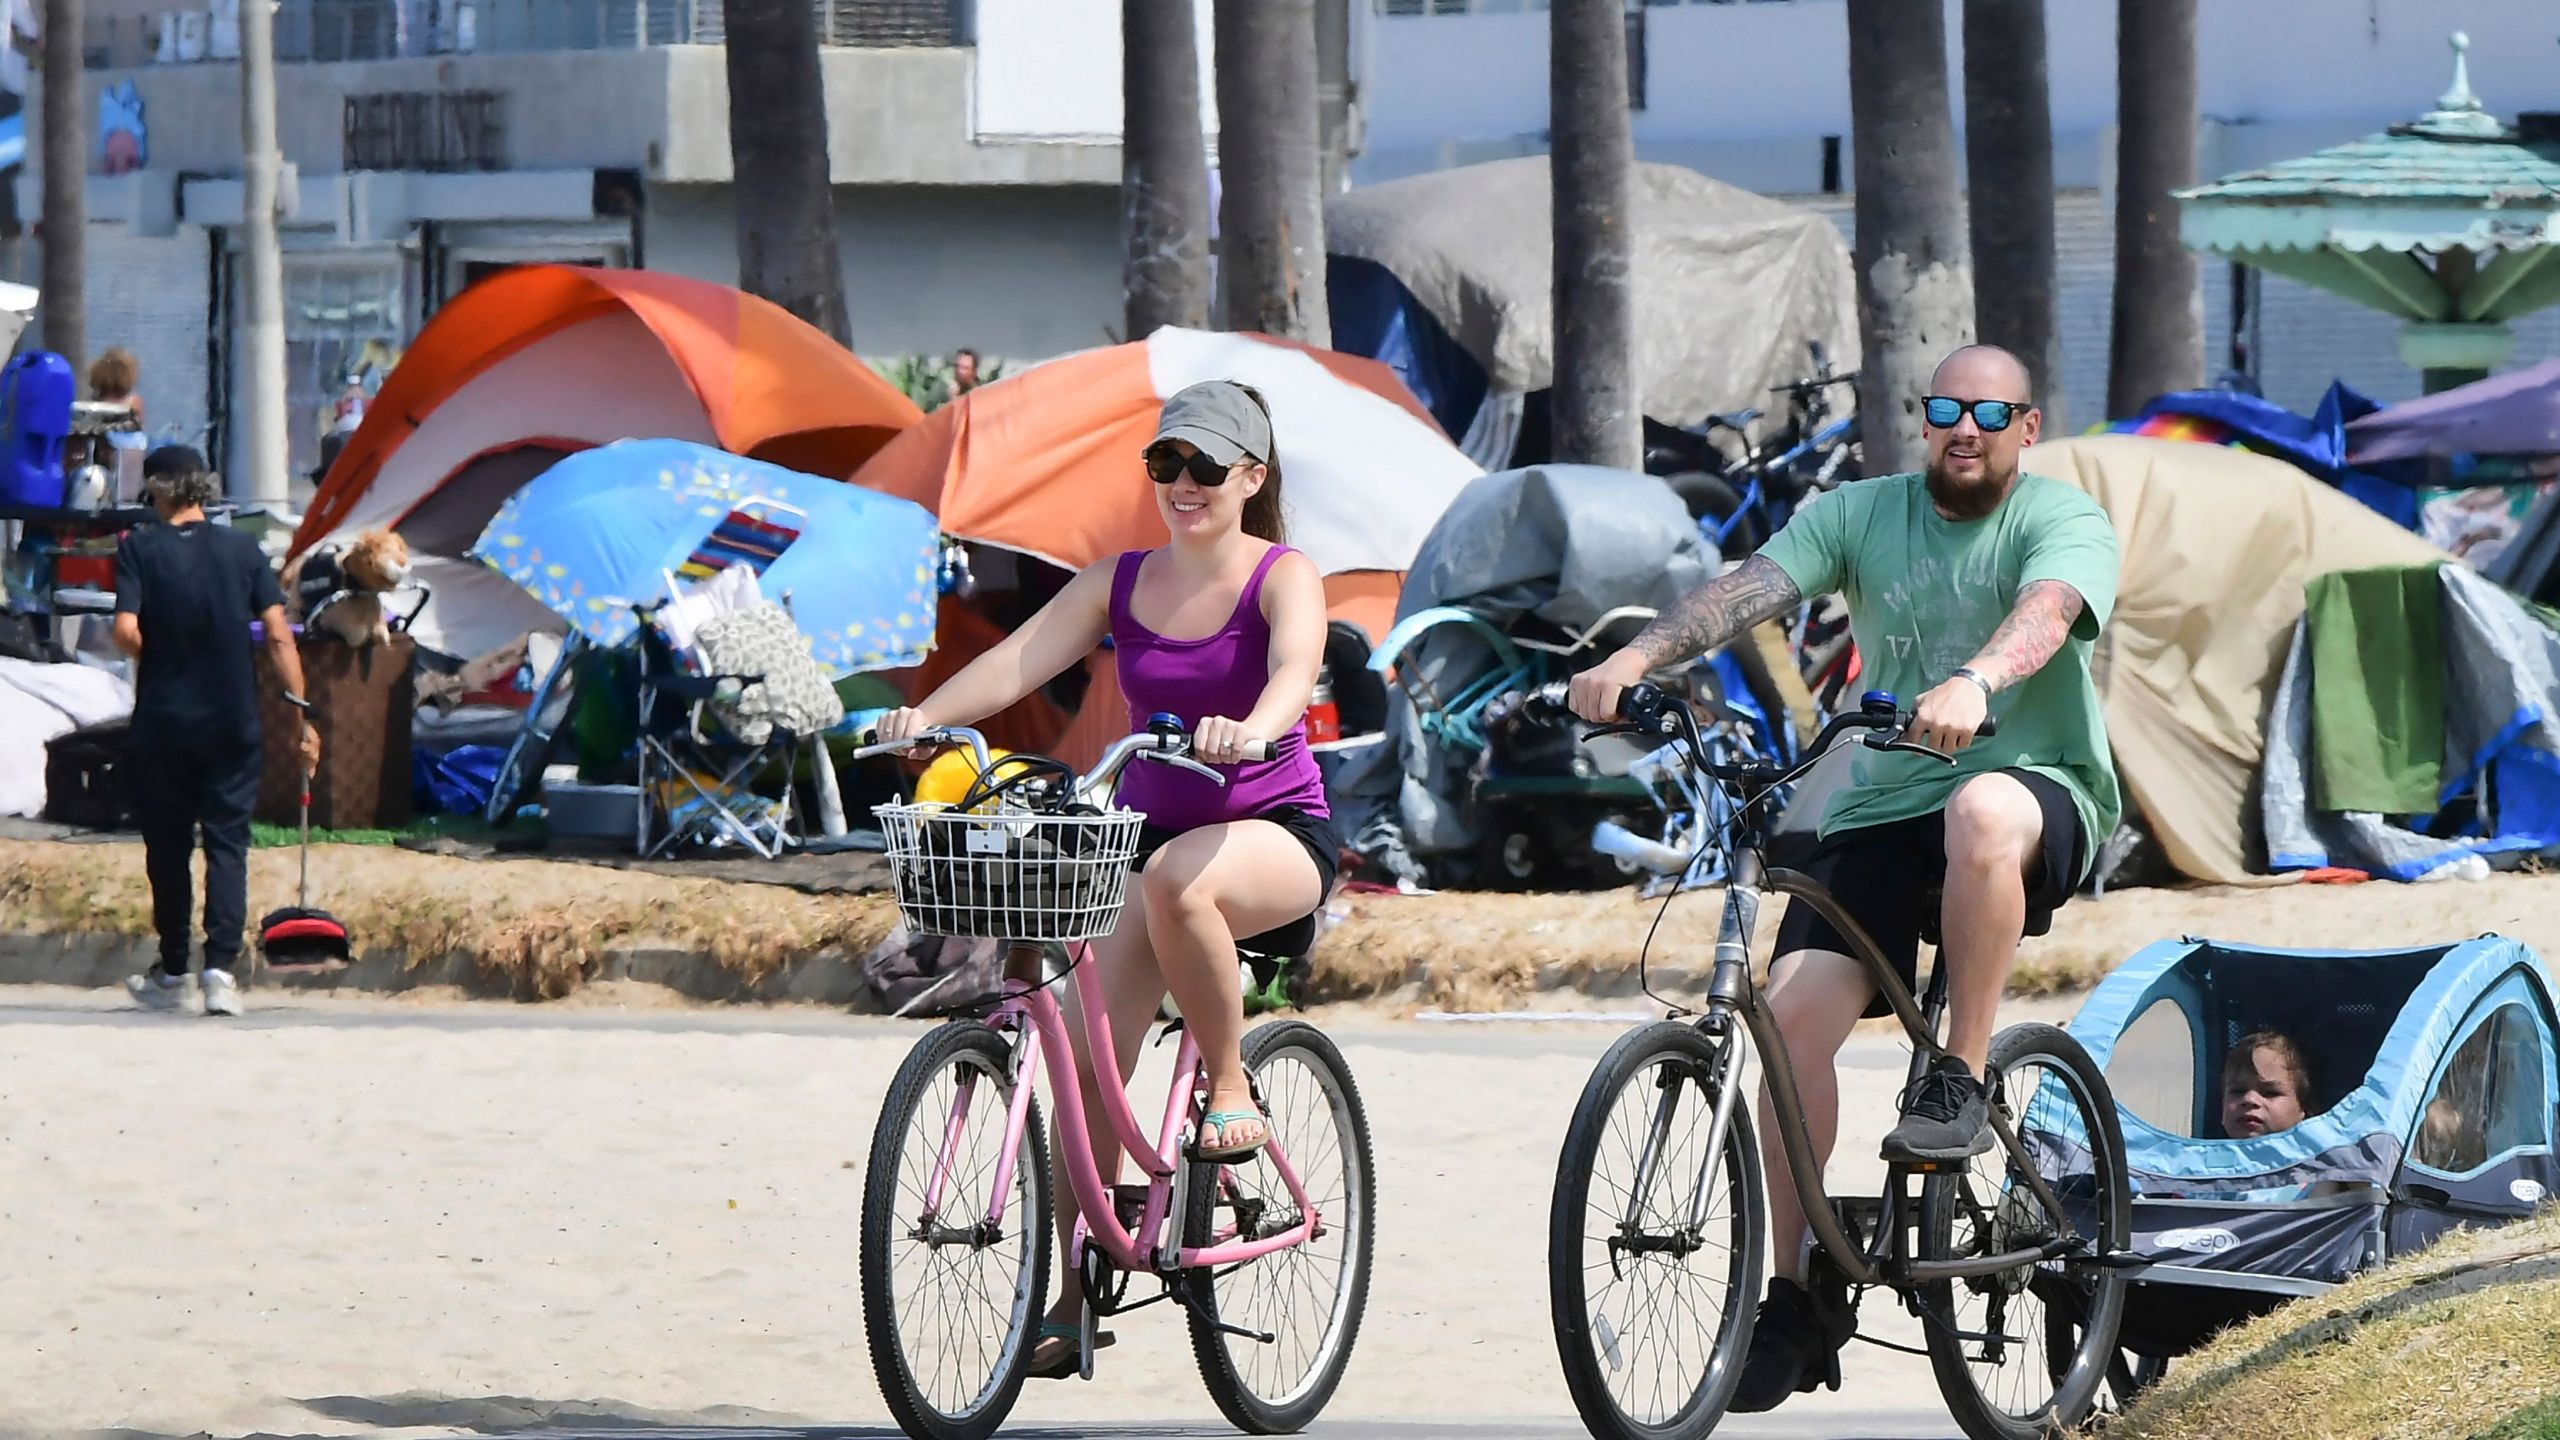 Cyclists ride past tents housing the homeless along the Ocean Front Walk in Venice, California on June 30, 2021, where an initiative began this week offering people in homeless encampments a voluntary path to permanent housing. (Frederic J. Brown AFP via Getty Images)